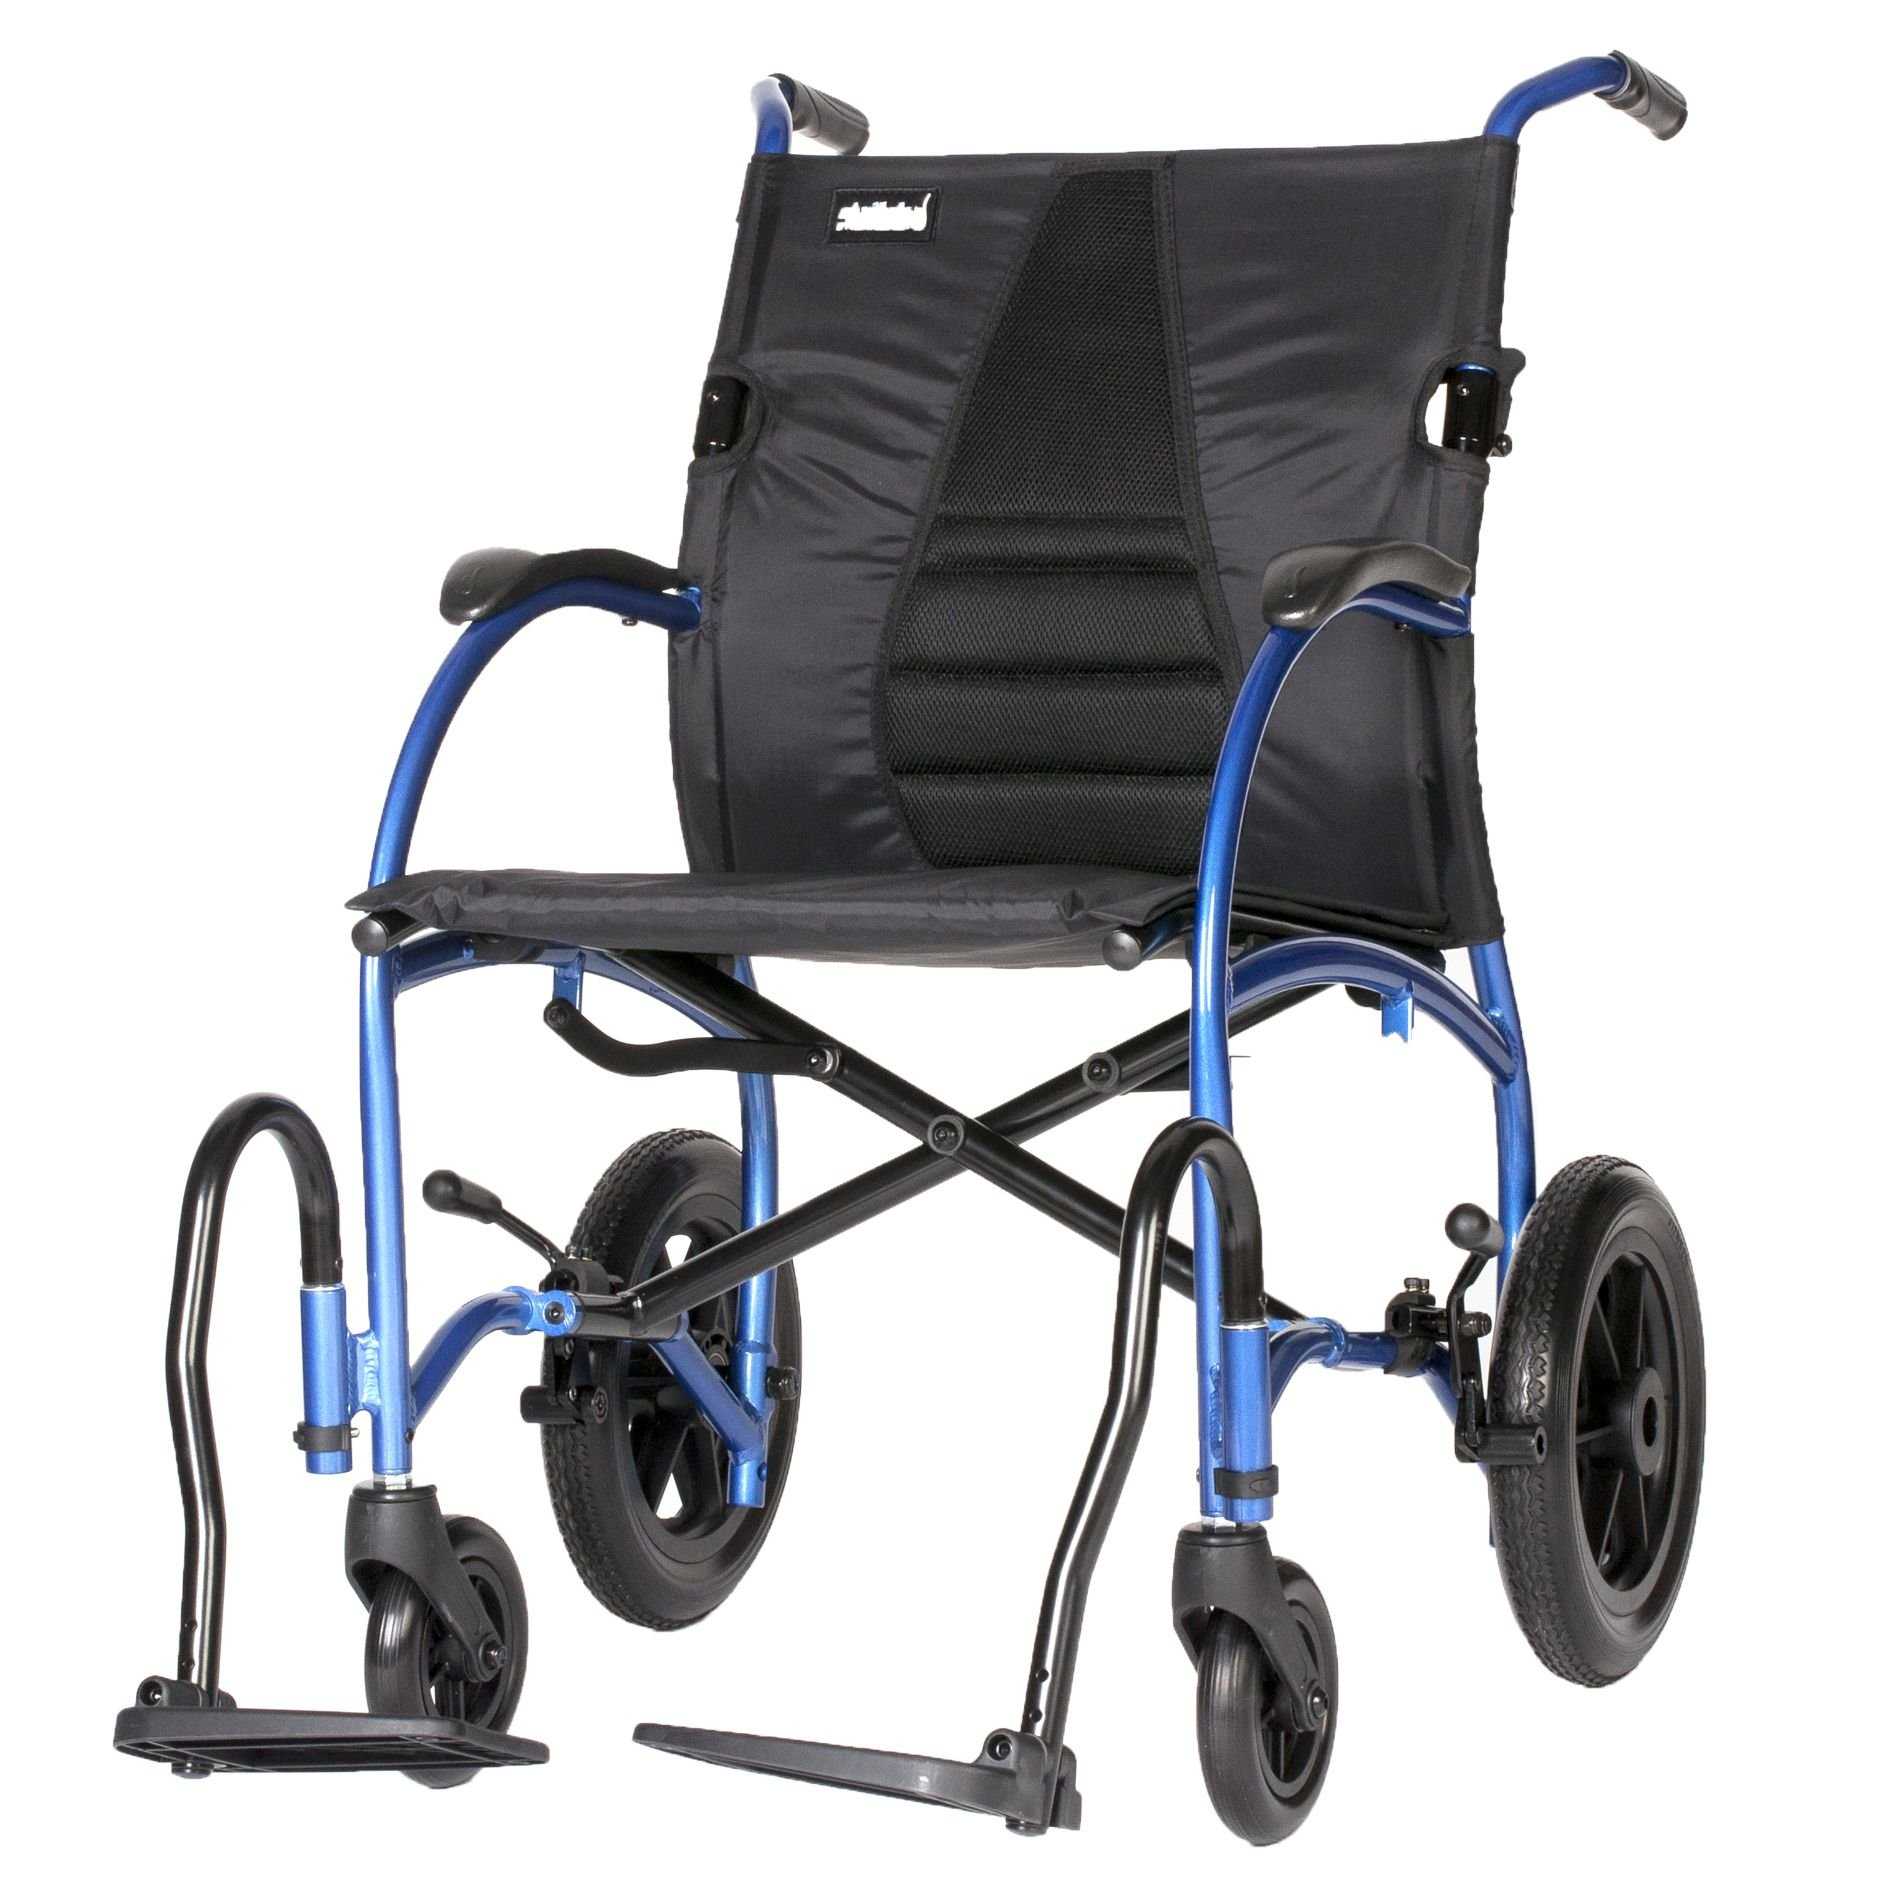 The Strongback Mobility Wheelchair - Second Place winner of the HME Retail Product award (sponsored by HomeCare magazine), Lightweight Portable Wheelchair for Healthy Posture and a Strong Back-1001